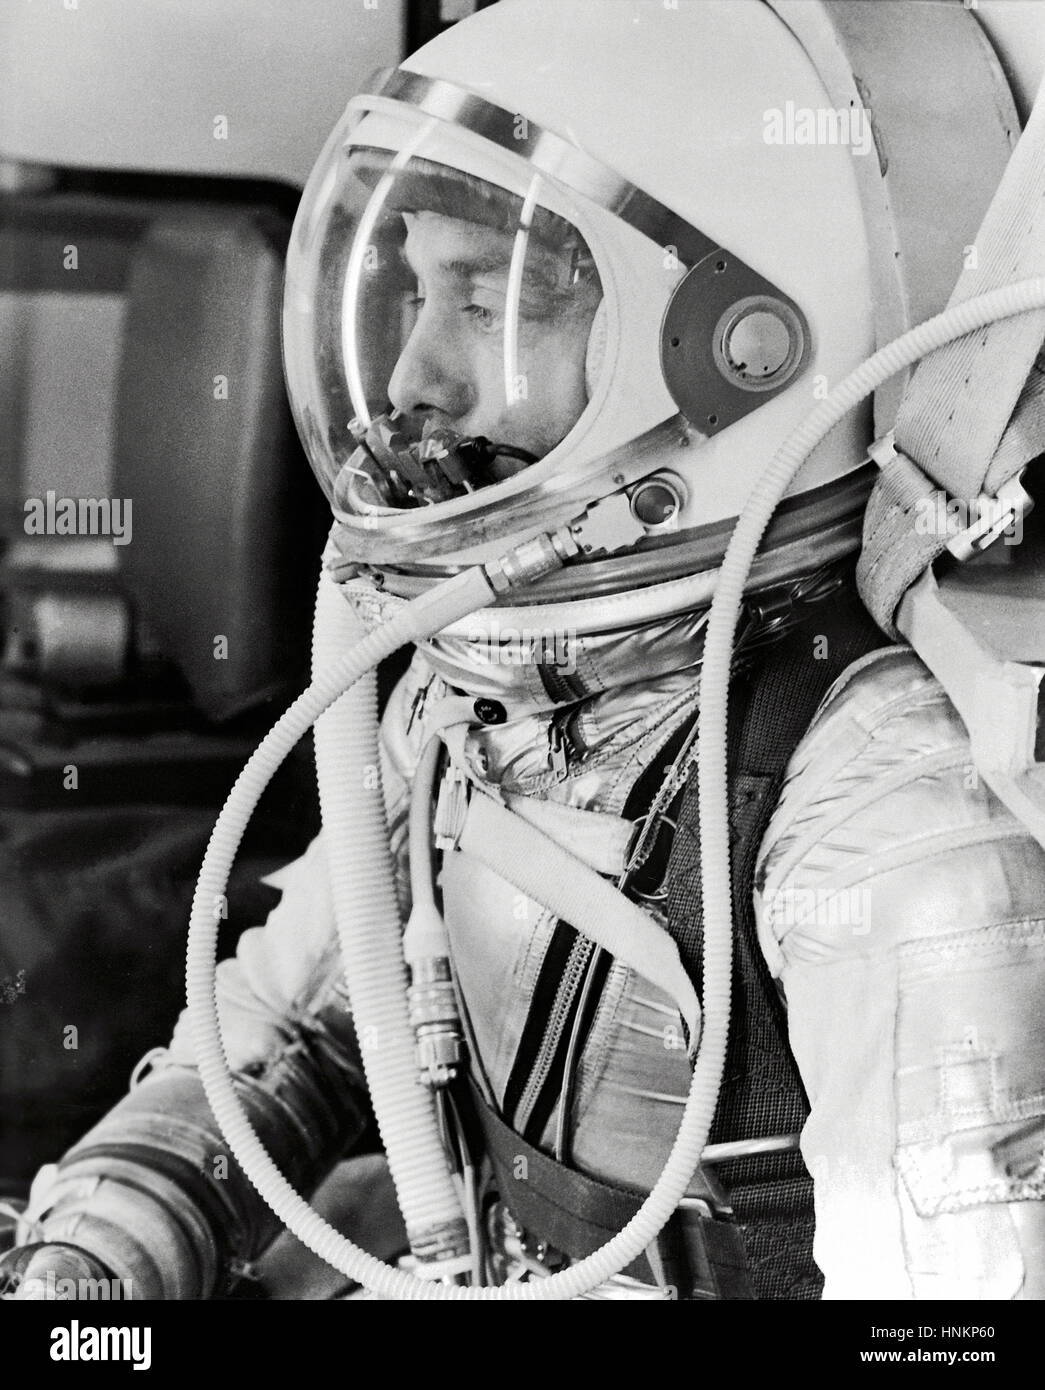 Astronaut Alan Shepard in his silver pressure suit with the helmet visor closed as he prepares for his upcoming - Stock Image